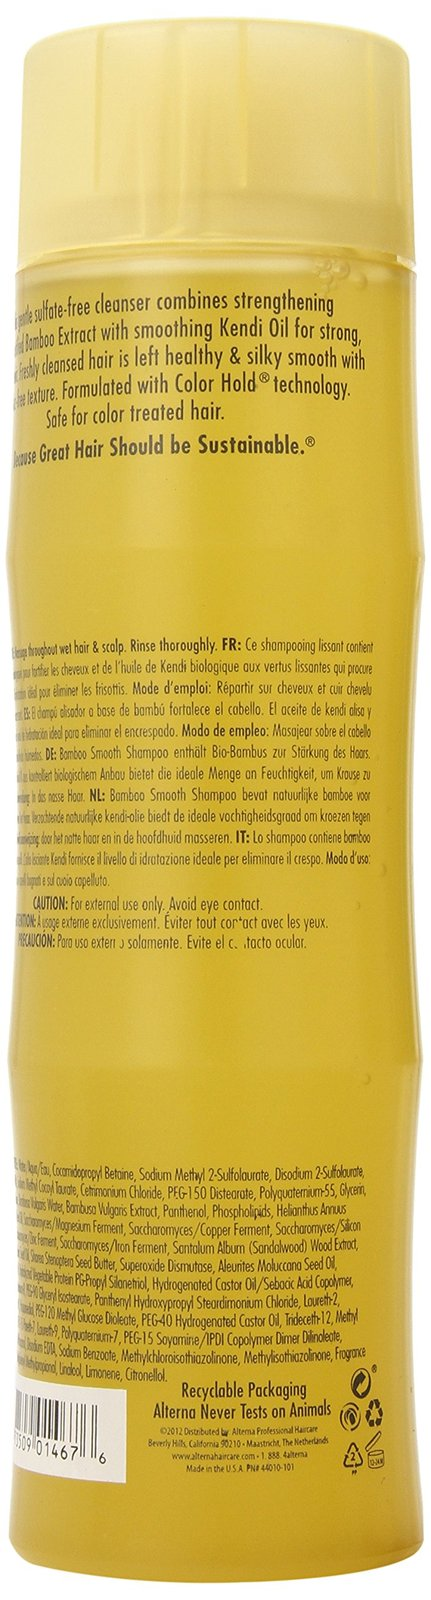 Alterna Bamboo Smooth Anti-Frizz Unisex Shampoo, 8.5-Ounce